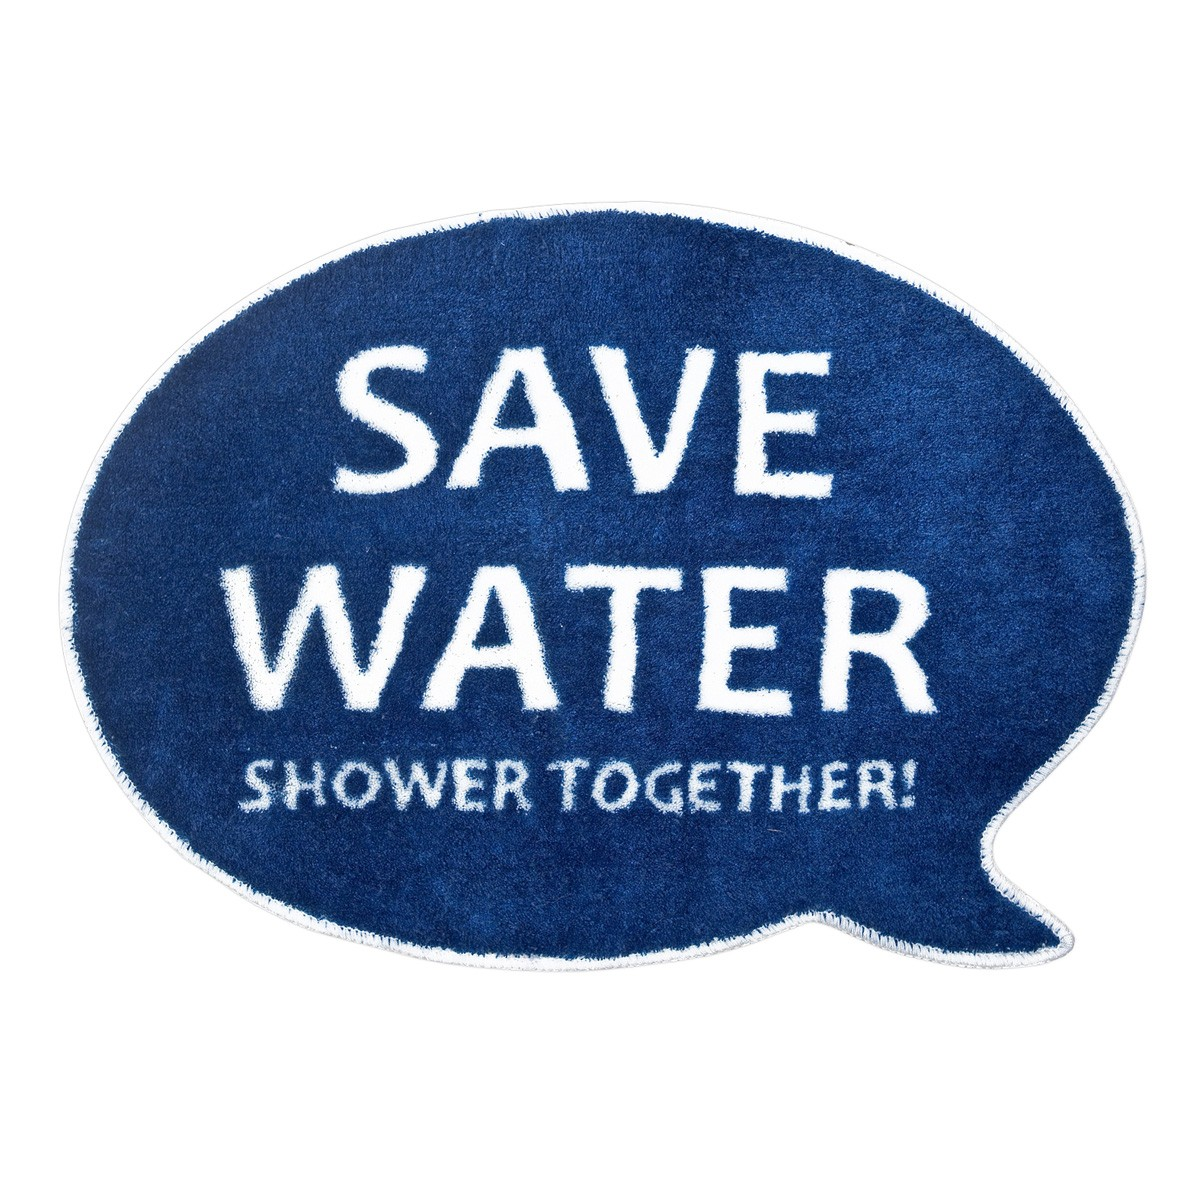 "Dywanik łazienkowy ""Save water! Shower together!"""